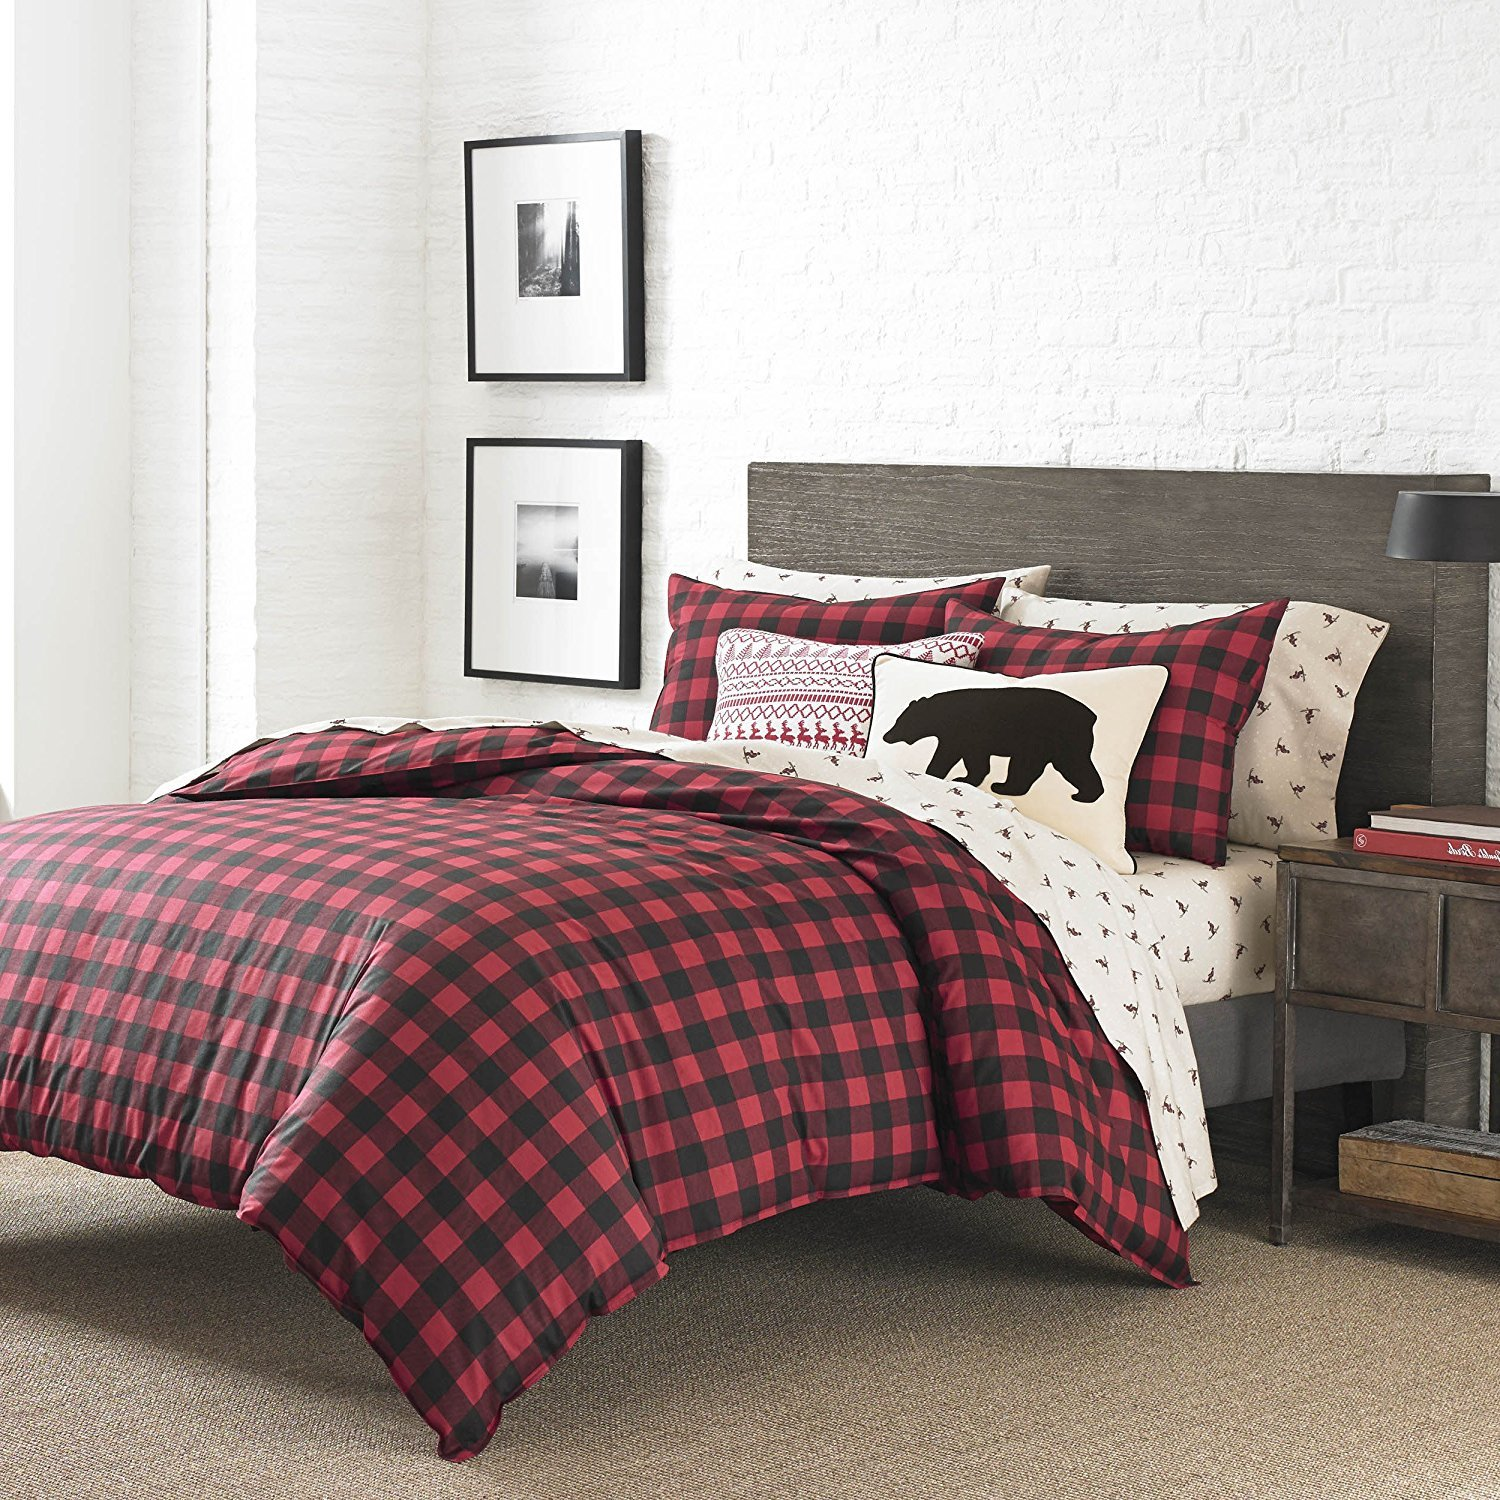 com cover toile sets black and red walls bed white with plaid comforter twin pictures amazon duvet bedding exceptional tan picture country